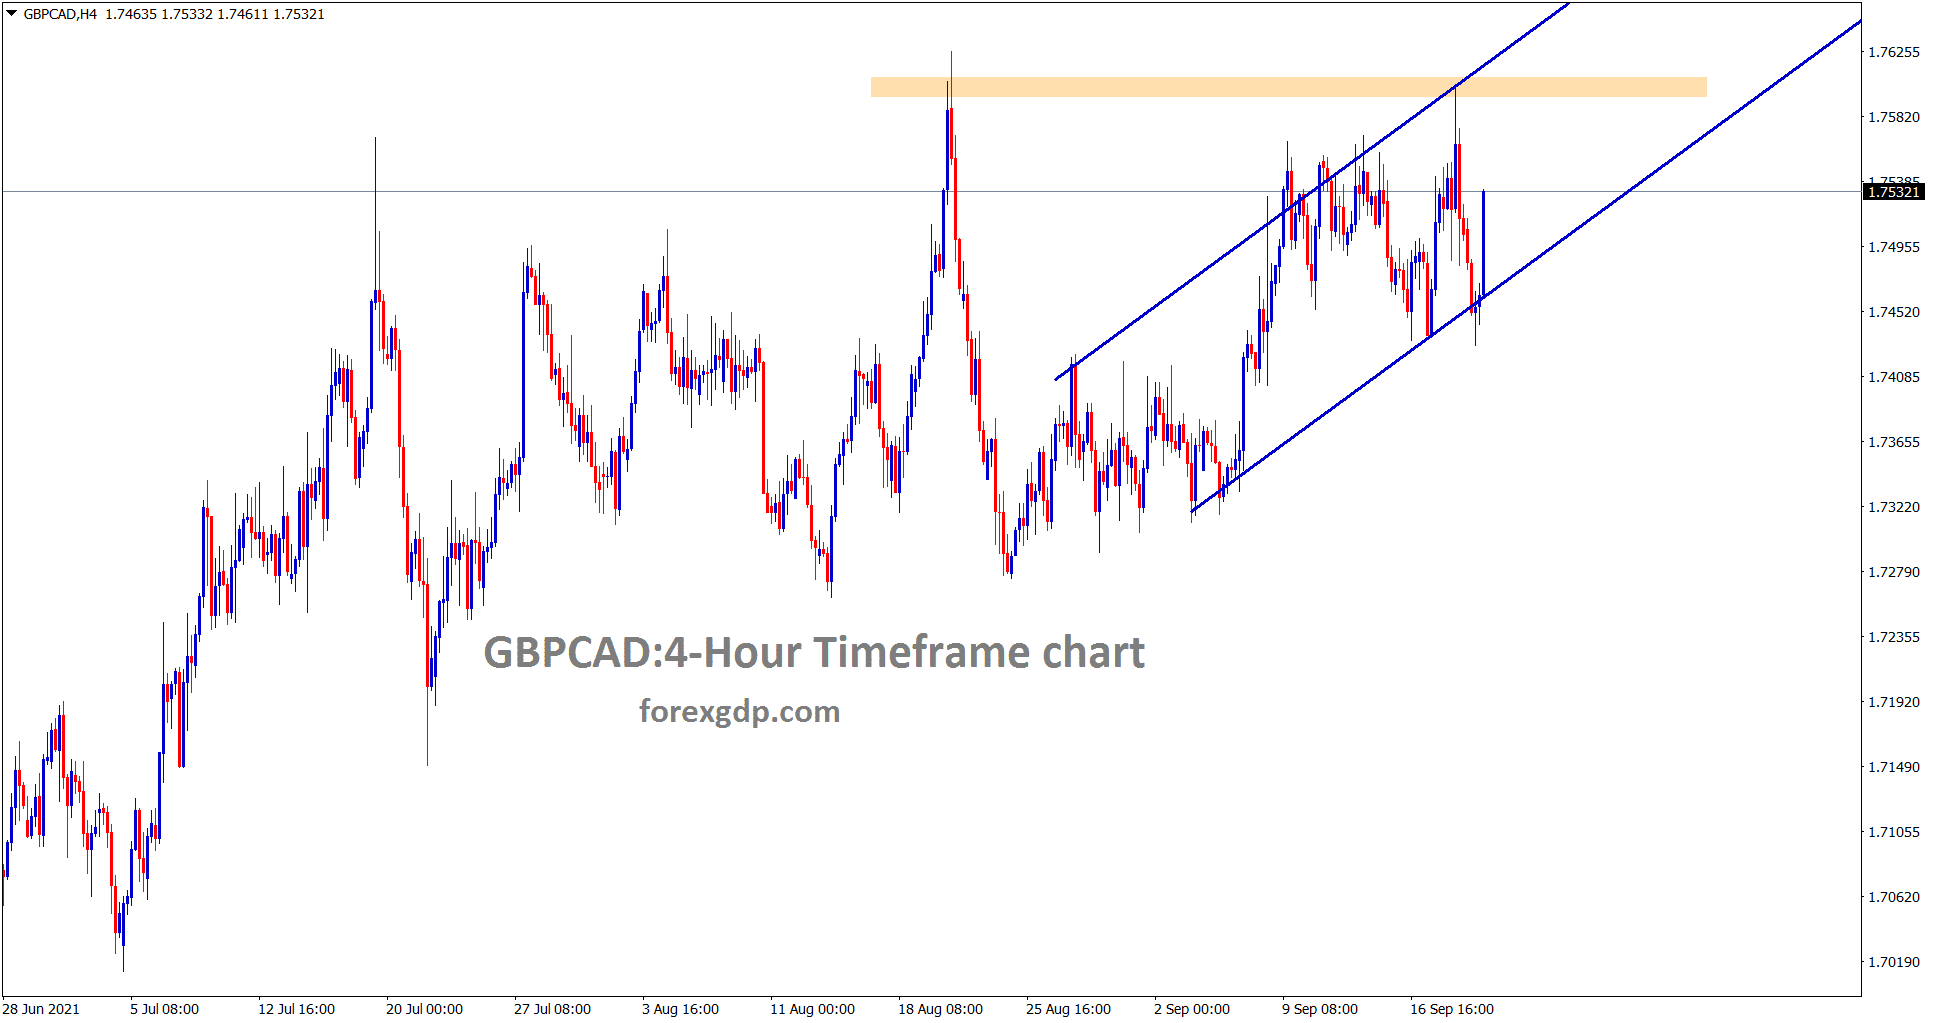 GBPCAD is still moving in an Uptrend within the channel ranges